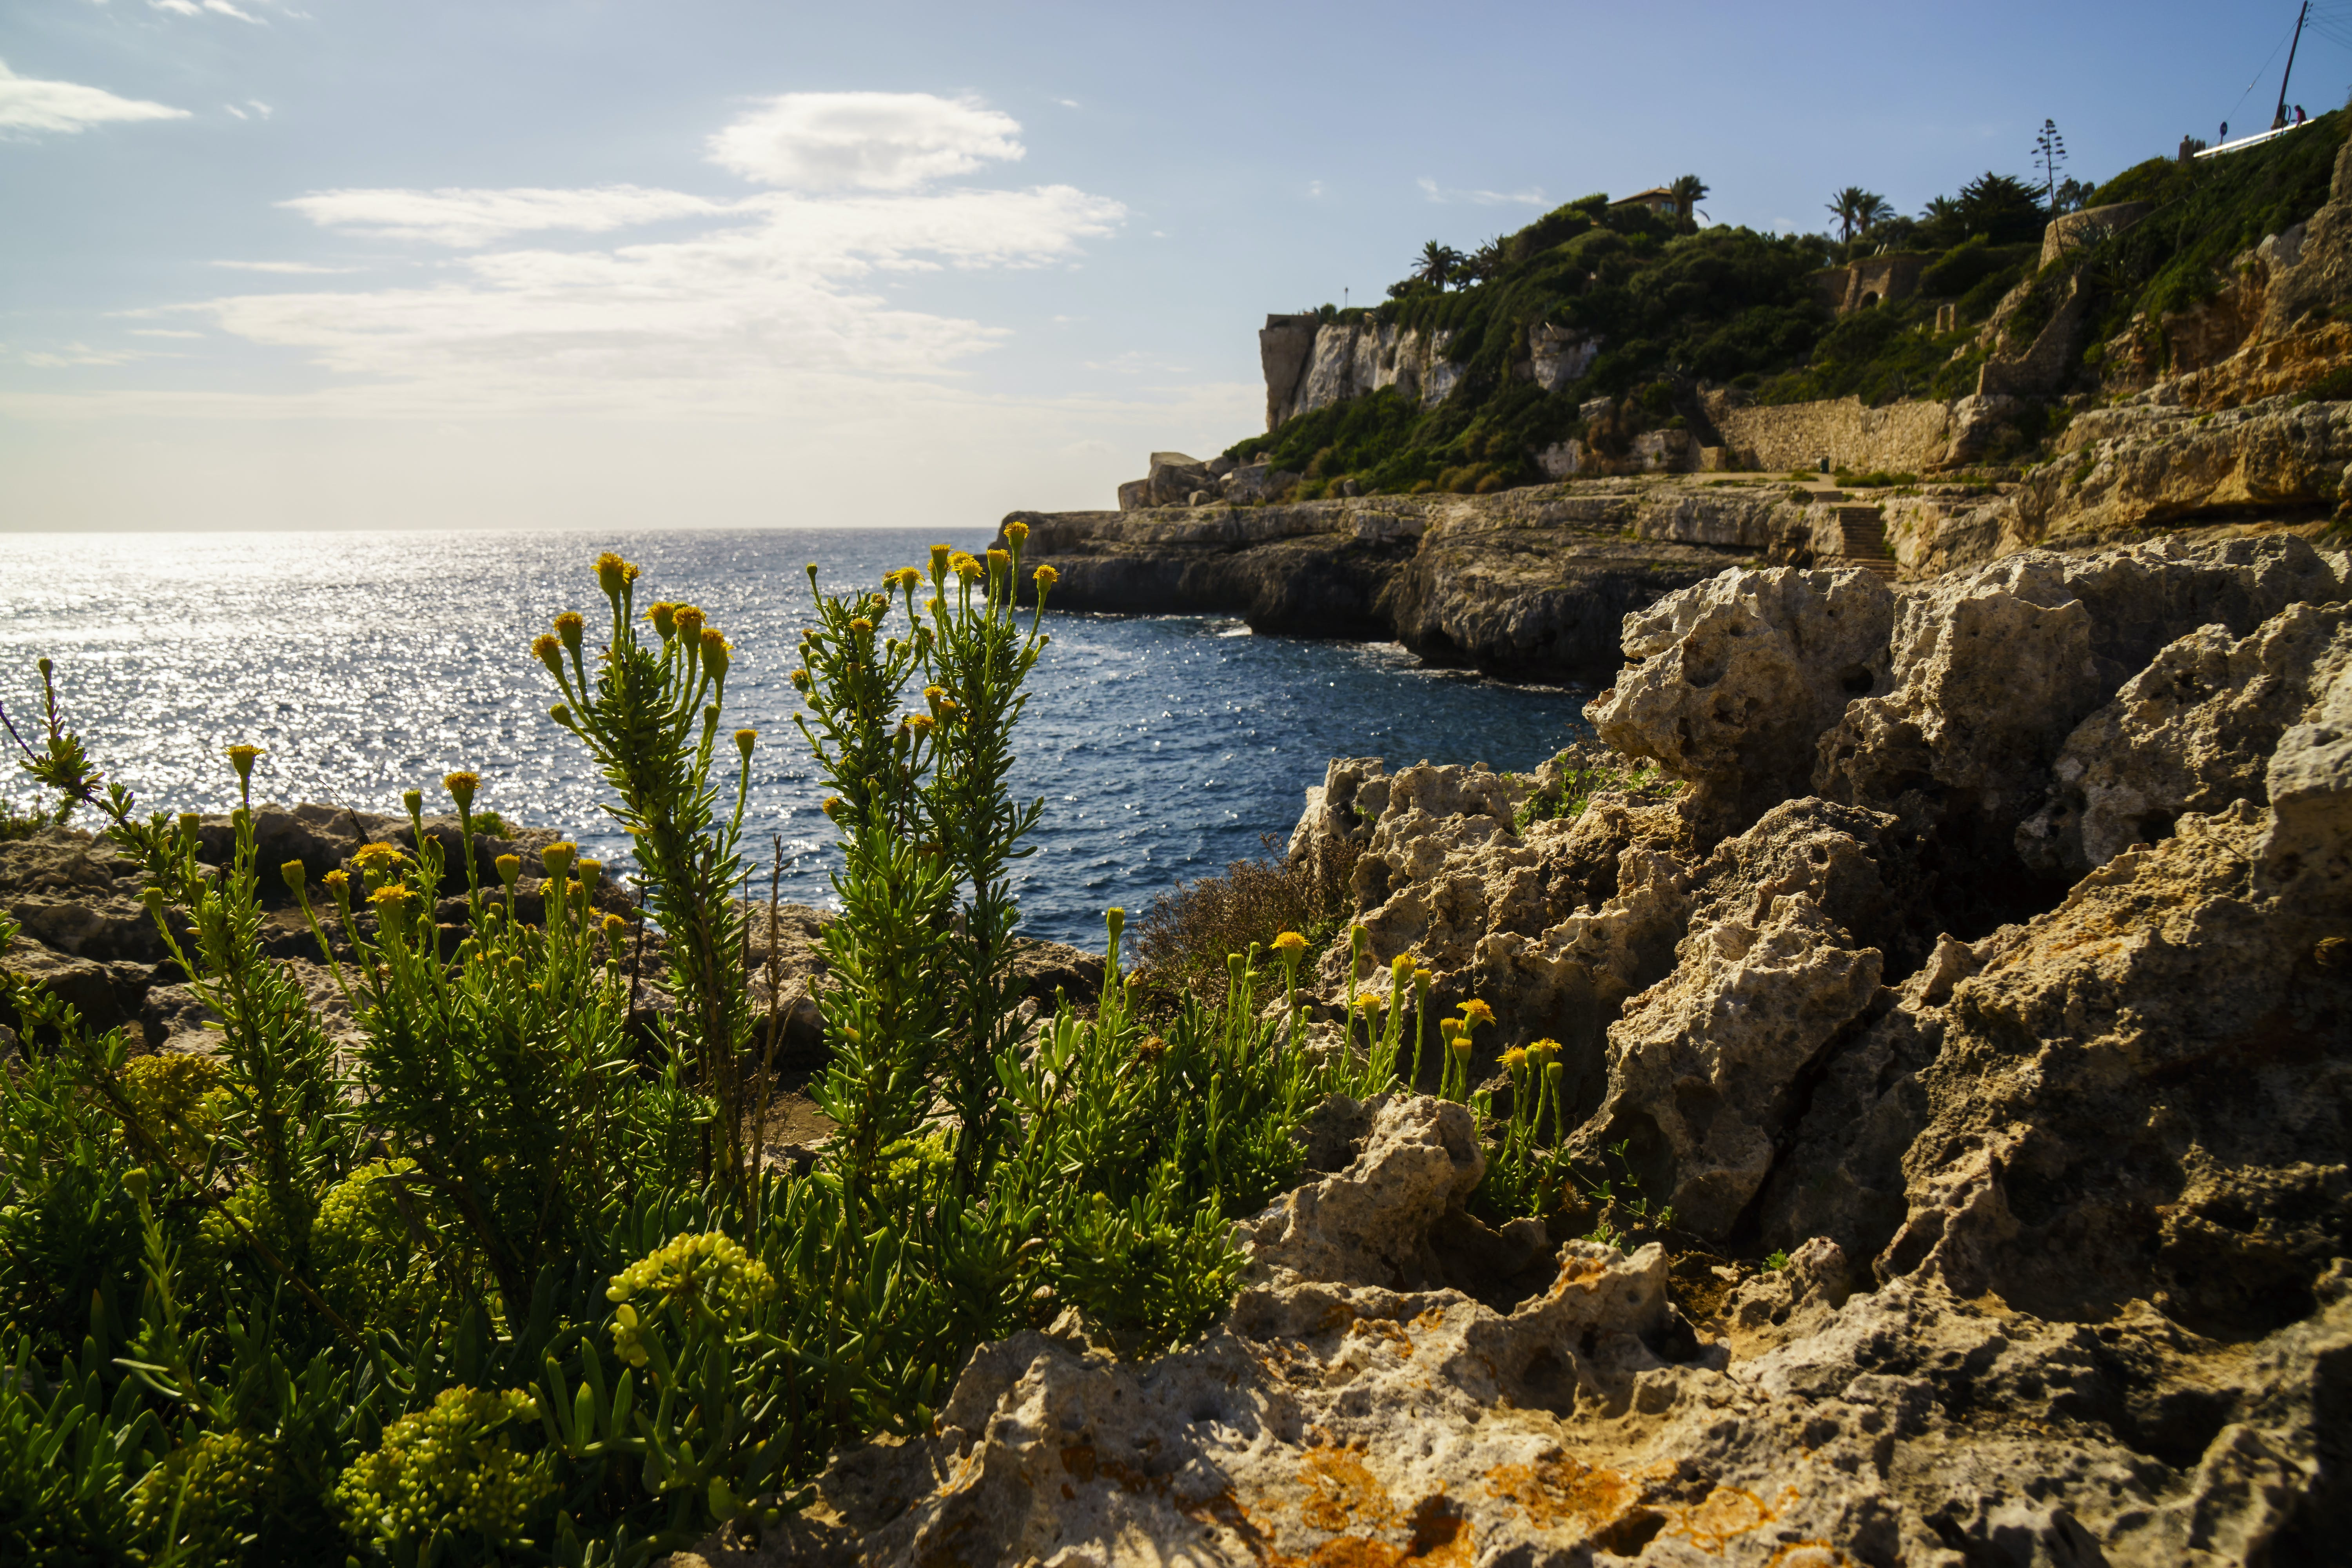 Cliff and Body of Water Landscape Photography